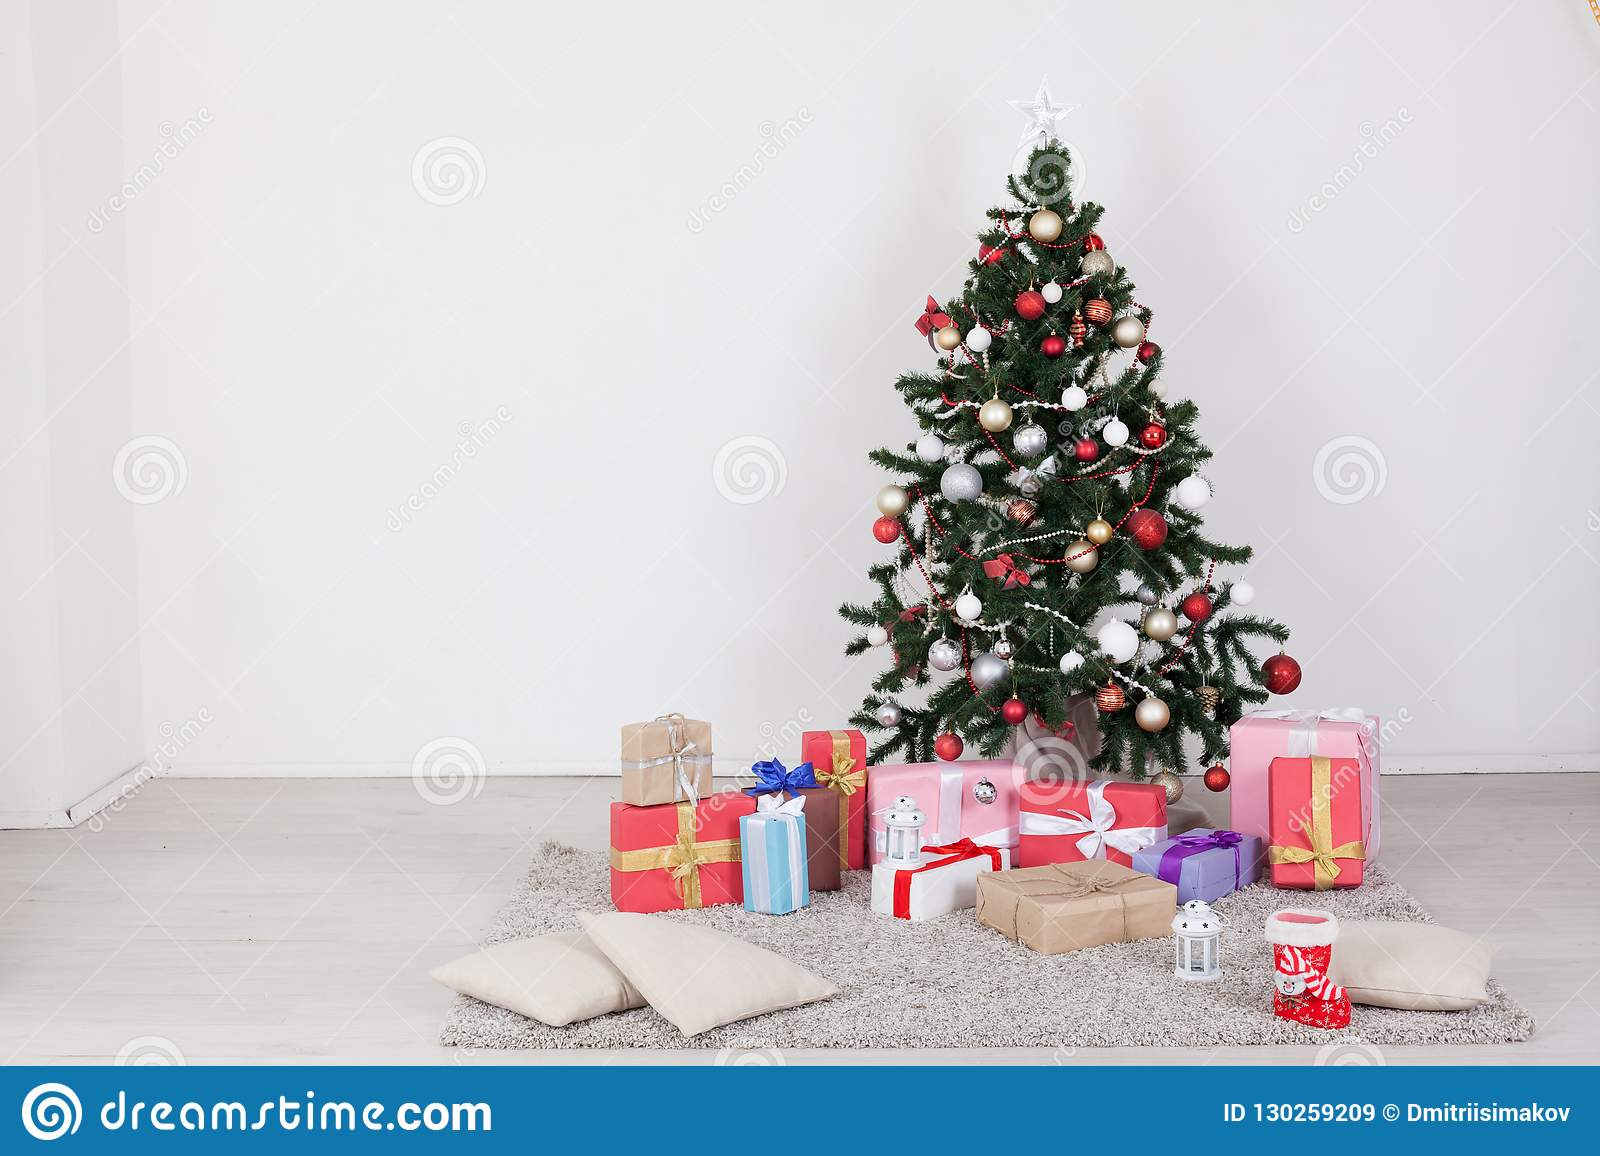 2019 year for lady- Christmas great tree with presents and lights